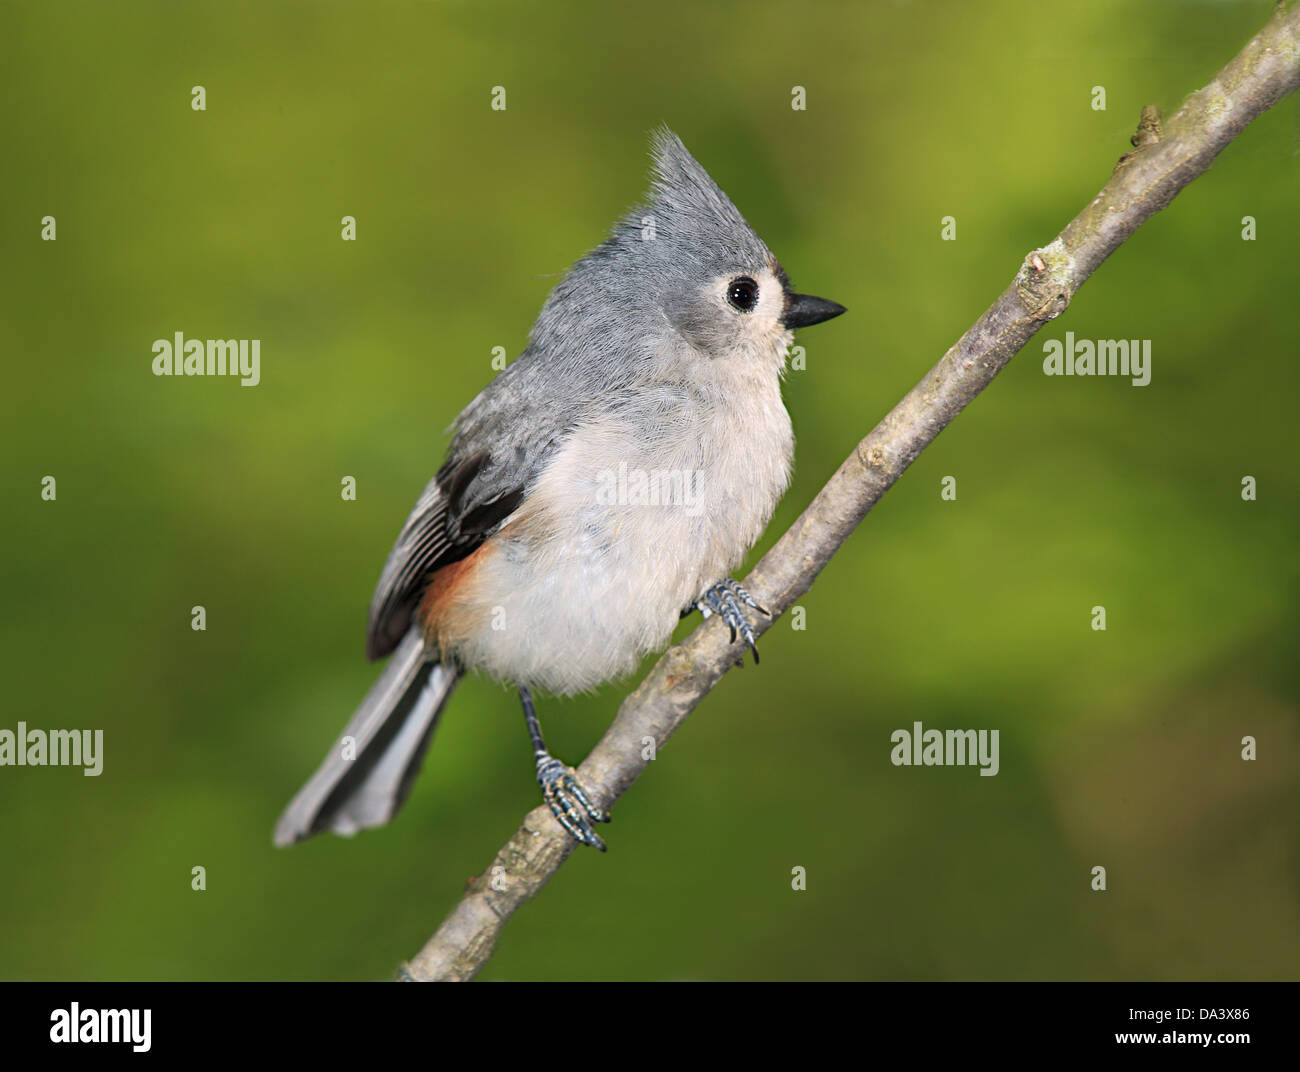 A Cute Little Bird, The Tufted Titmouse, Nicely Posing With It's Crest Raised And It's Feathers Fluffed, Parus bicolor Stock Photo